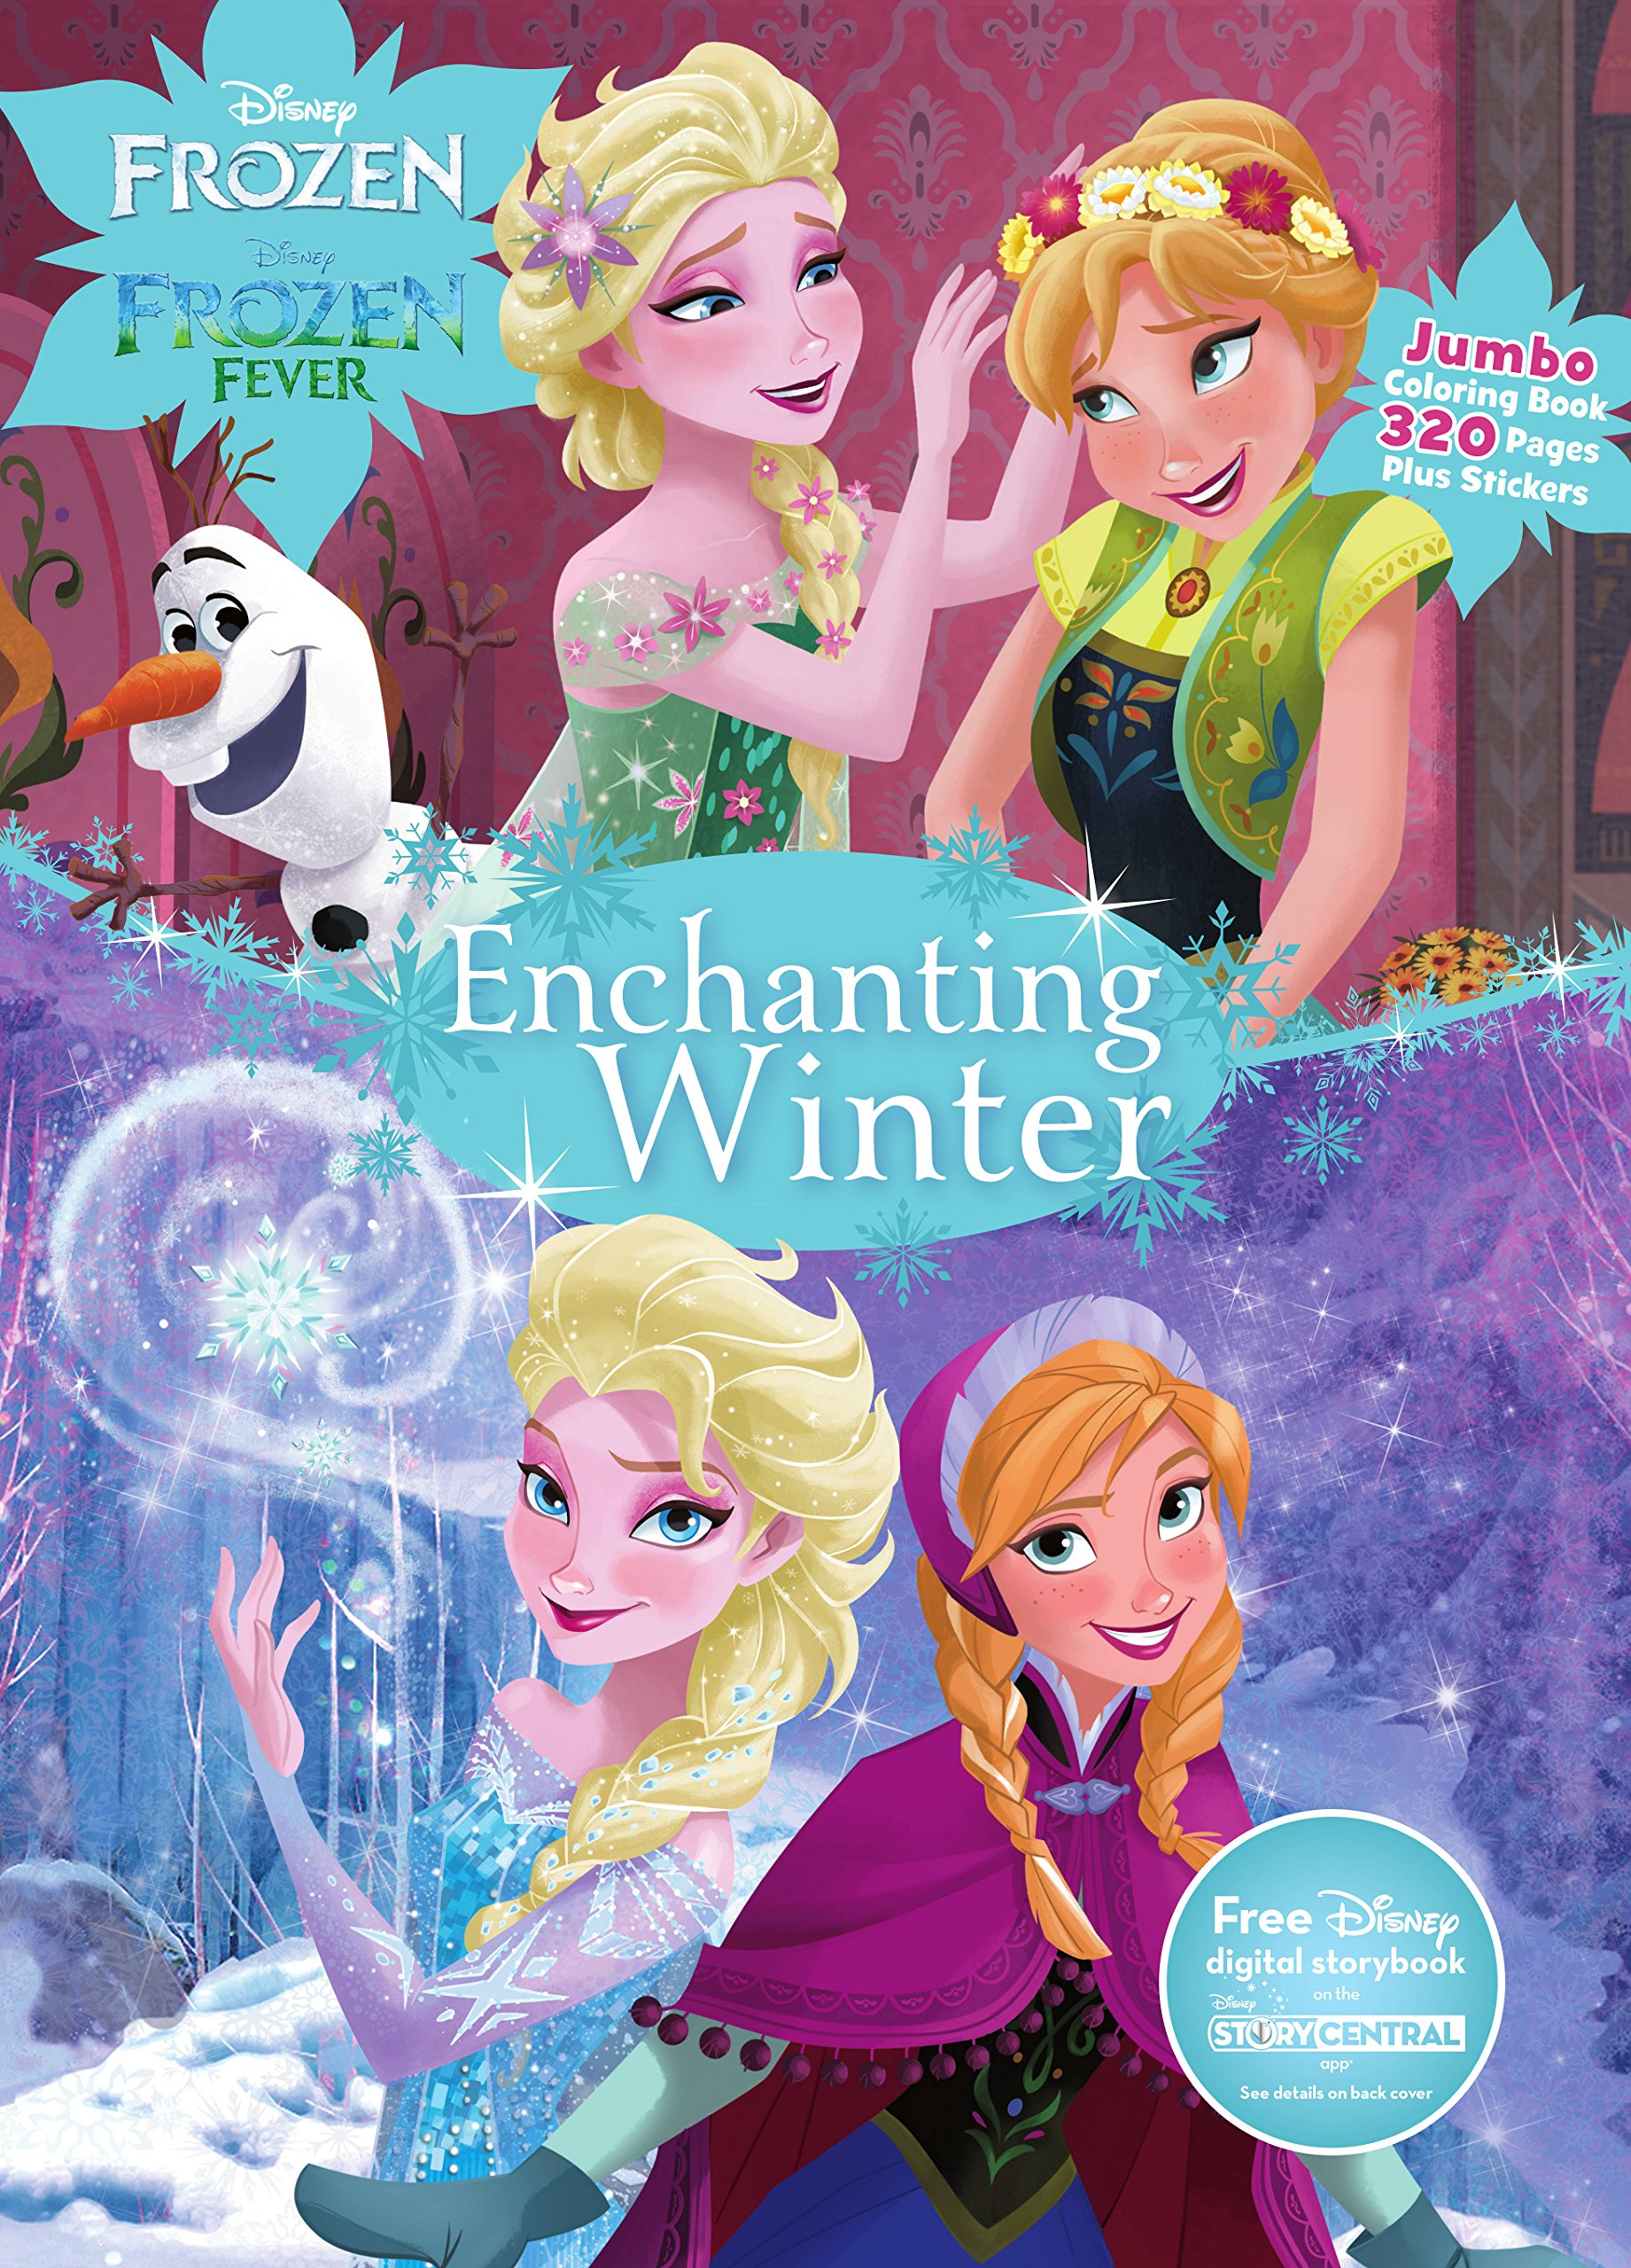 Disney Frozen Enchanting Winter Jumbo Coloring Book Parragon Books Ltd 9781474837613 Amazon Com Books